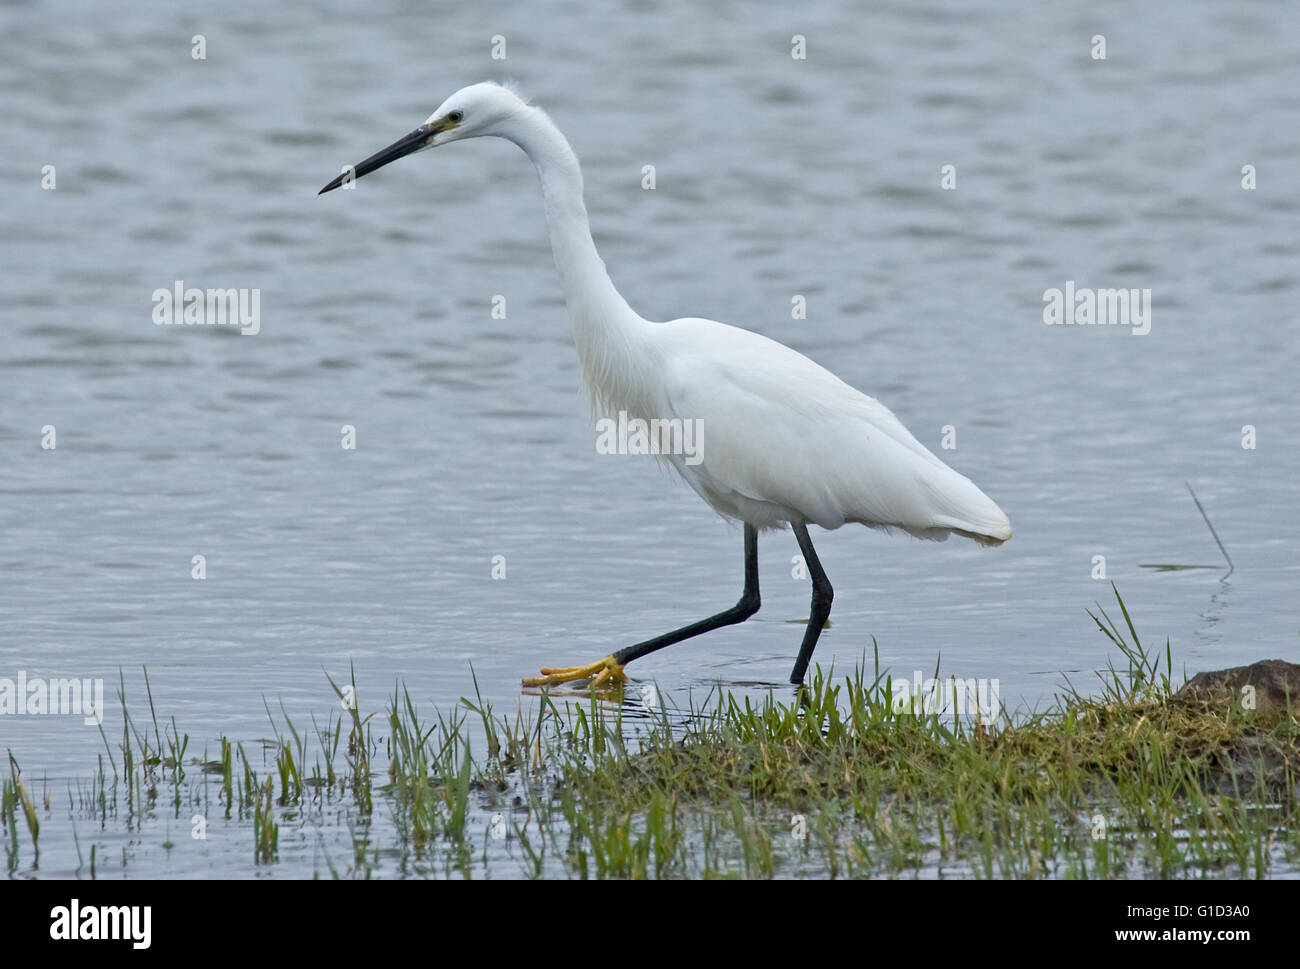 Little Egret bird wading water wildlife nature lake RSPB Frampton Marsh feathers beauty beautiful Stock Photo